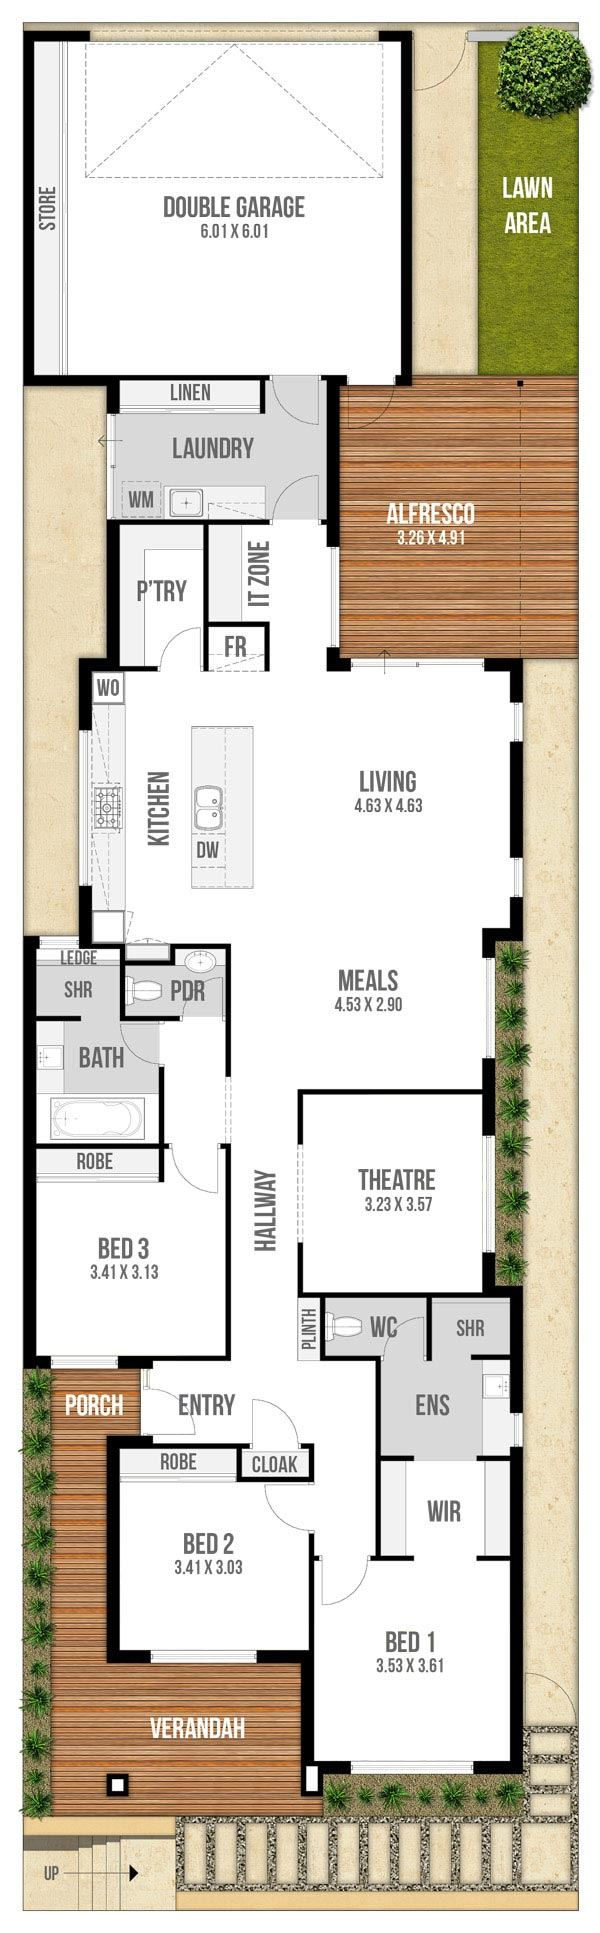 Floor plan friday narrow block with garage rear lane access for Narrow home plans with garage